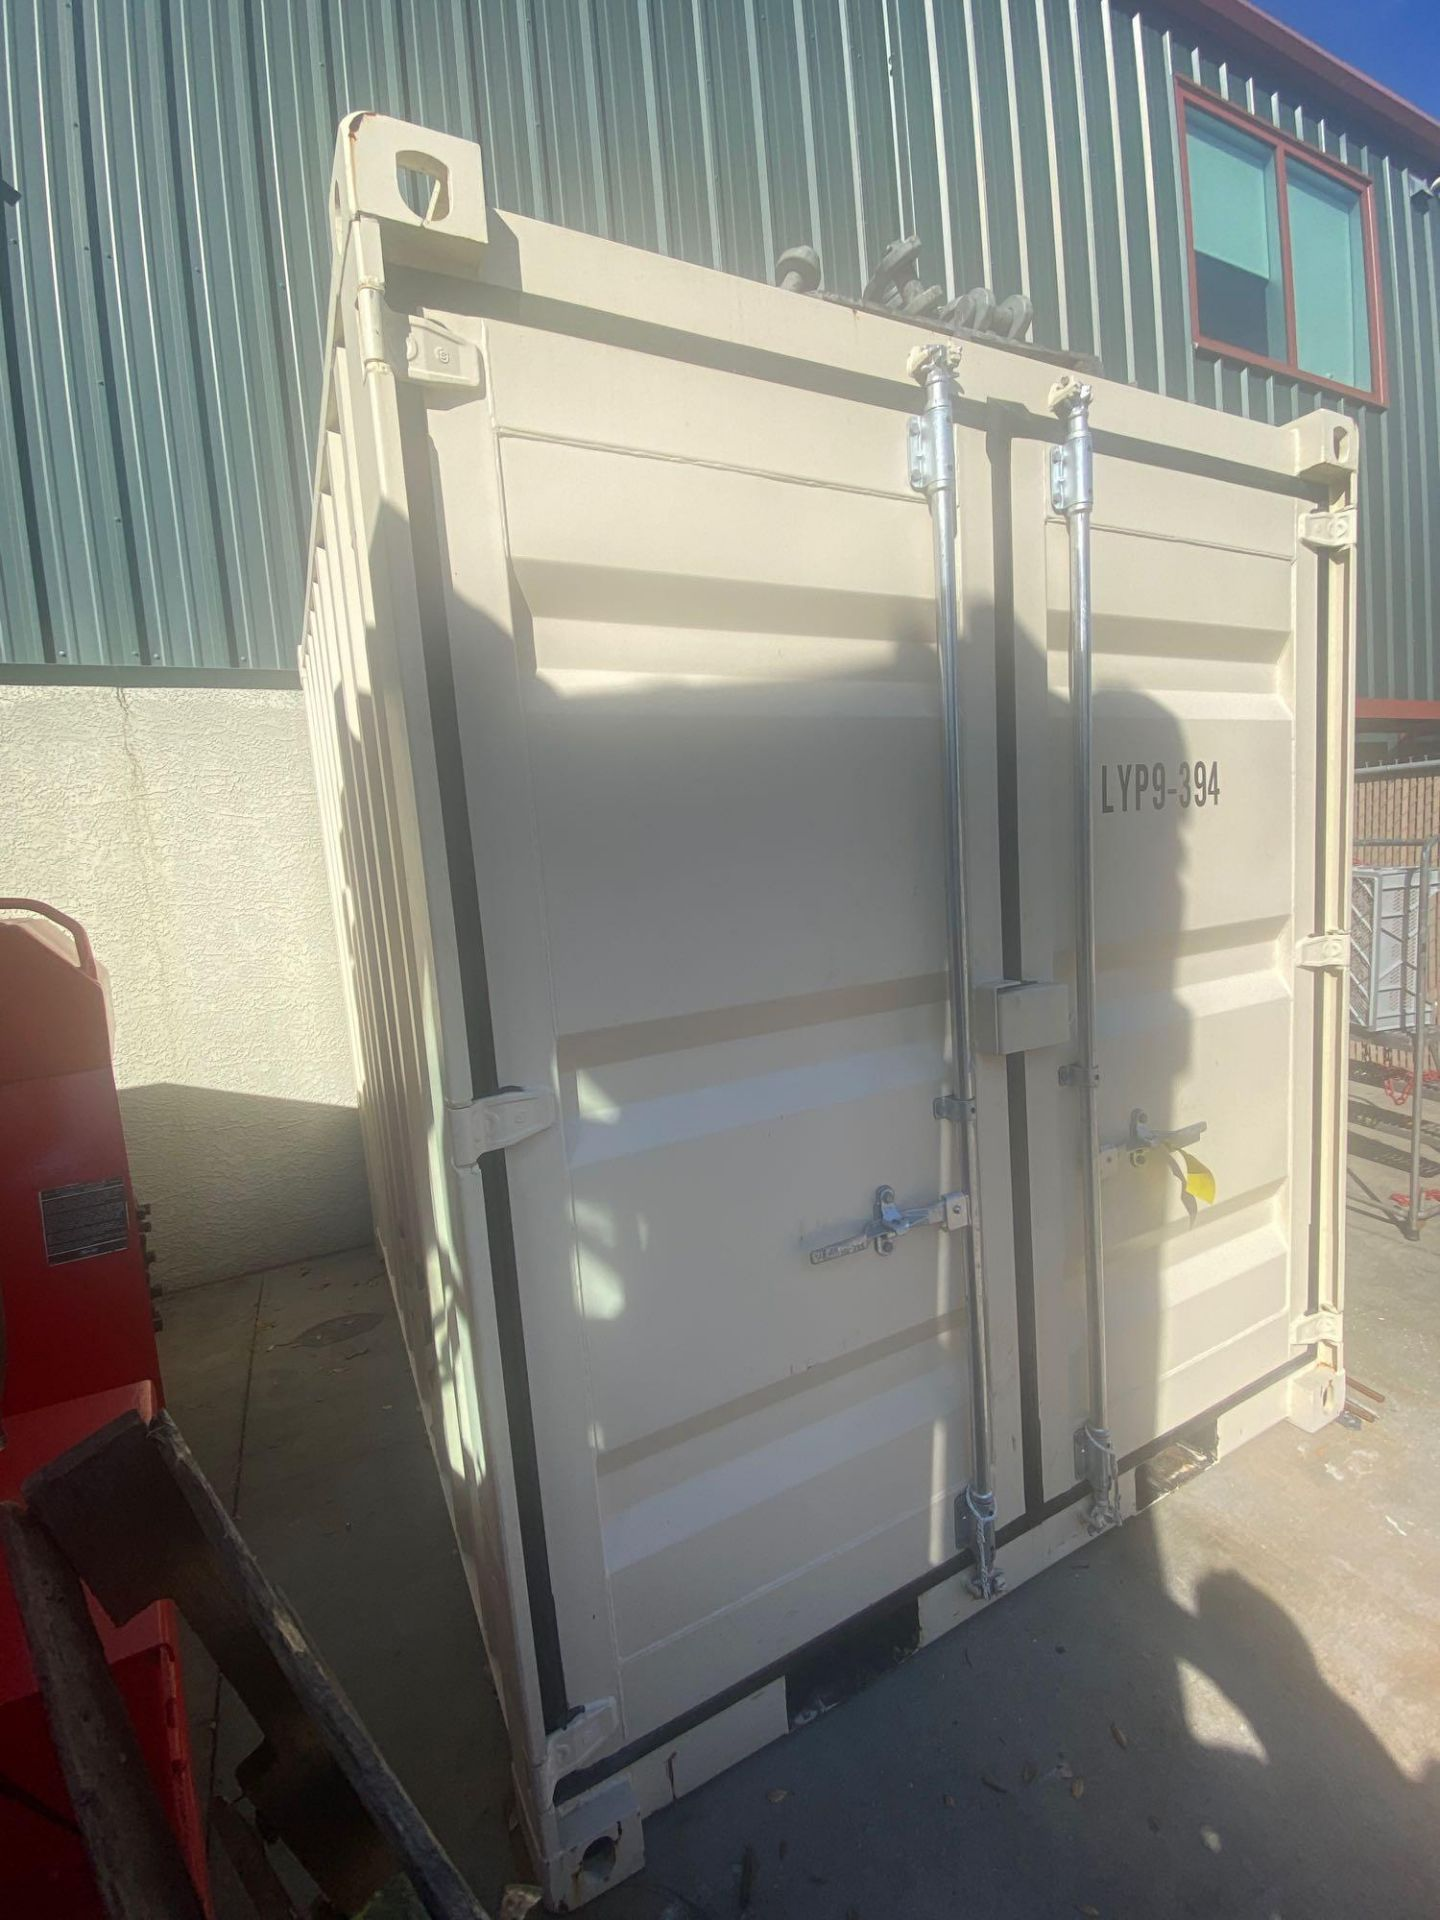 UNUSED 2020 SHIPPING/OFFICE CONTAINER WITH SIDE DOOR, FORK POCKETS, WINDOW - Image 4 of 5